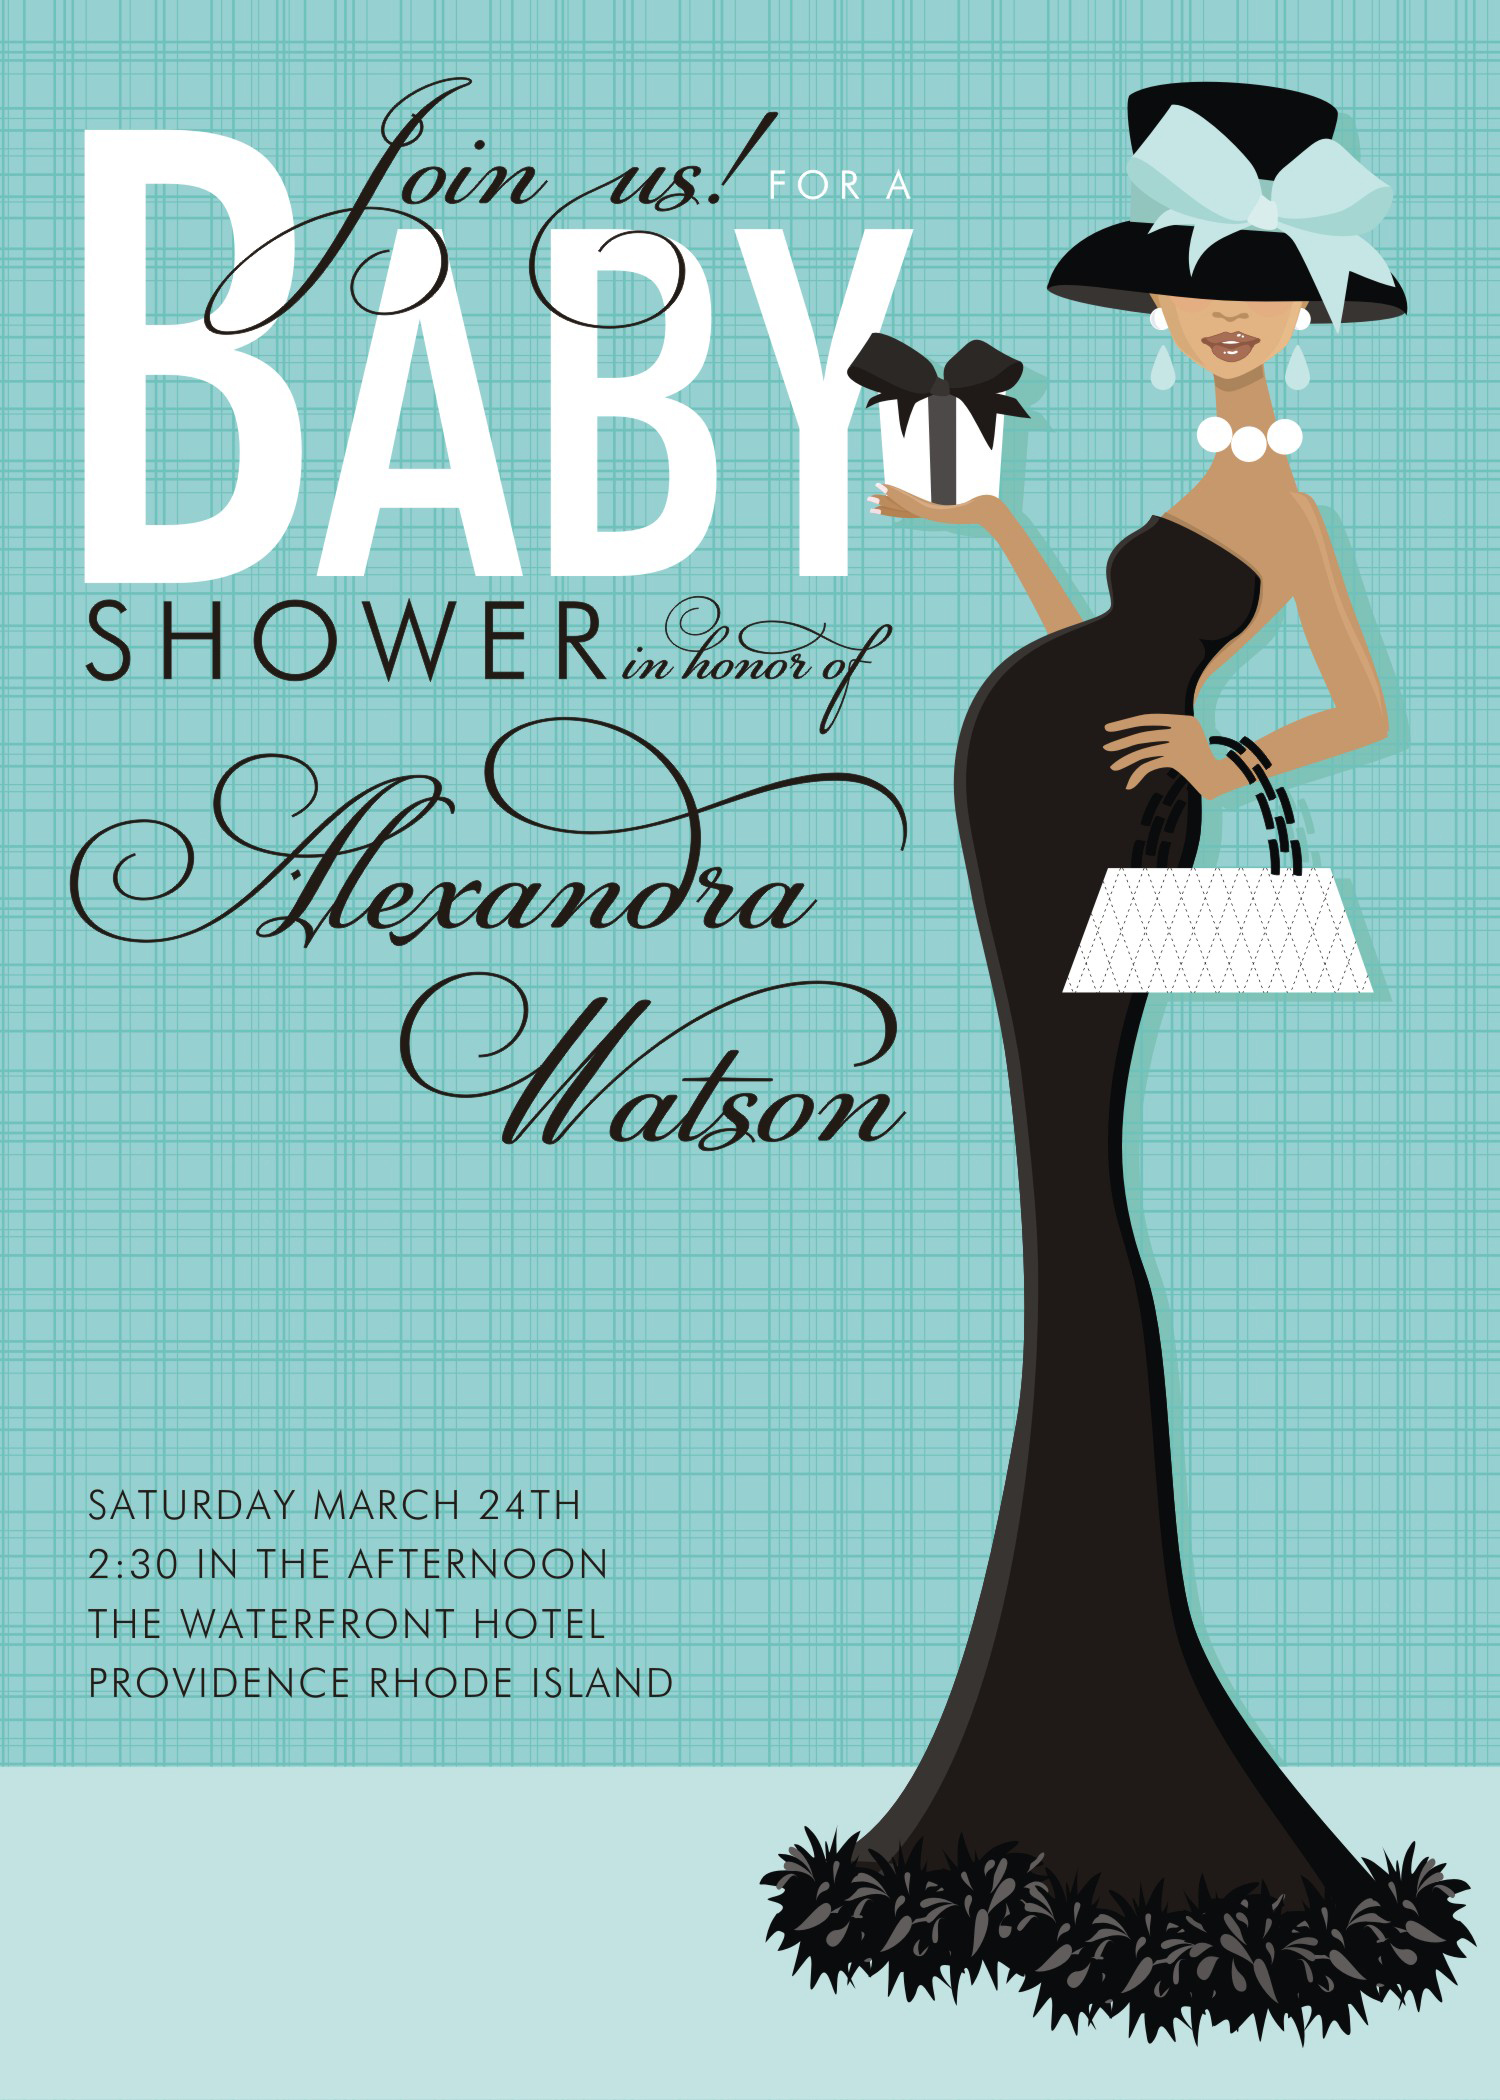 template baby shower - Etame.mibawa.co